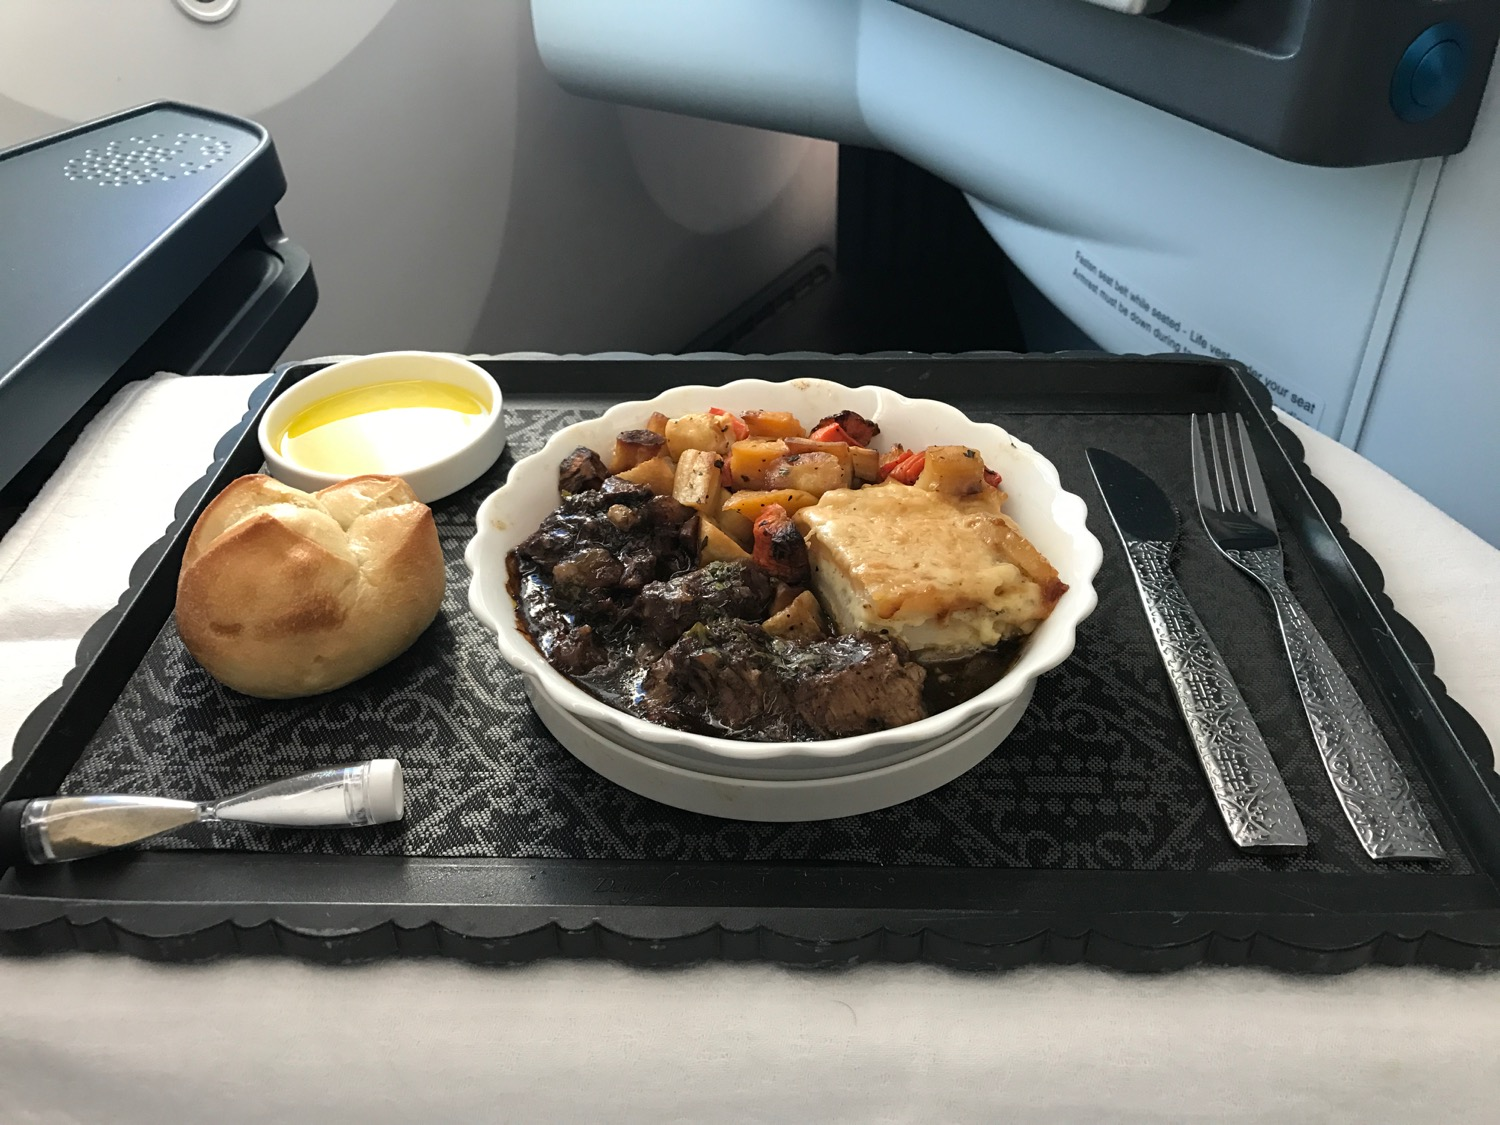 KLM 787 Business Class Review - 75